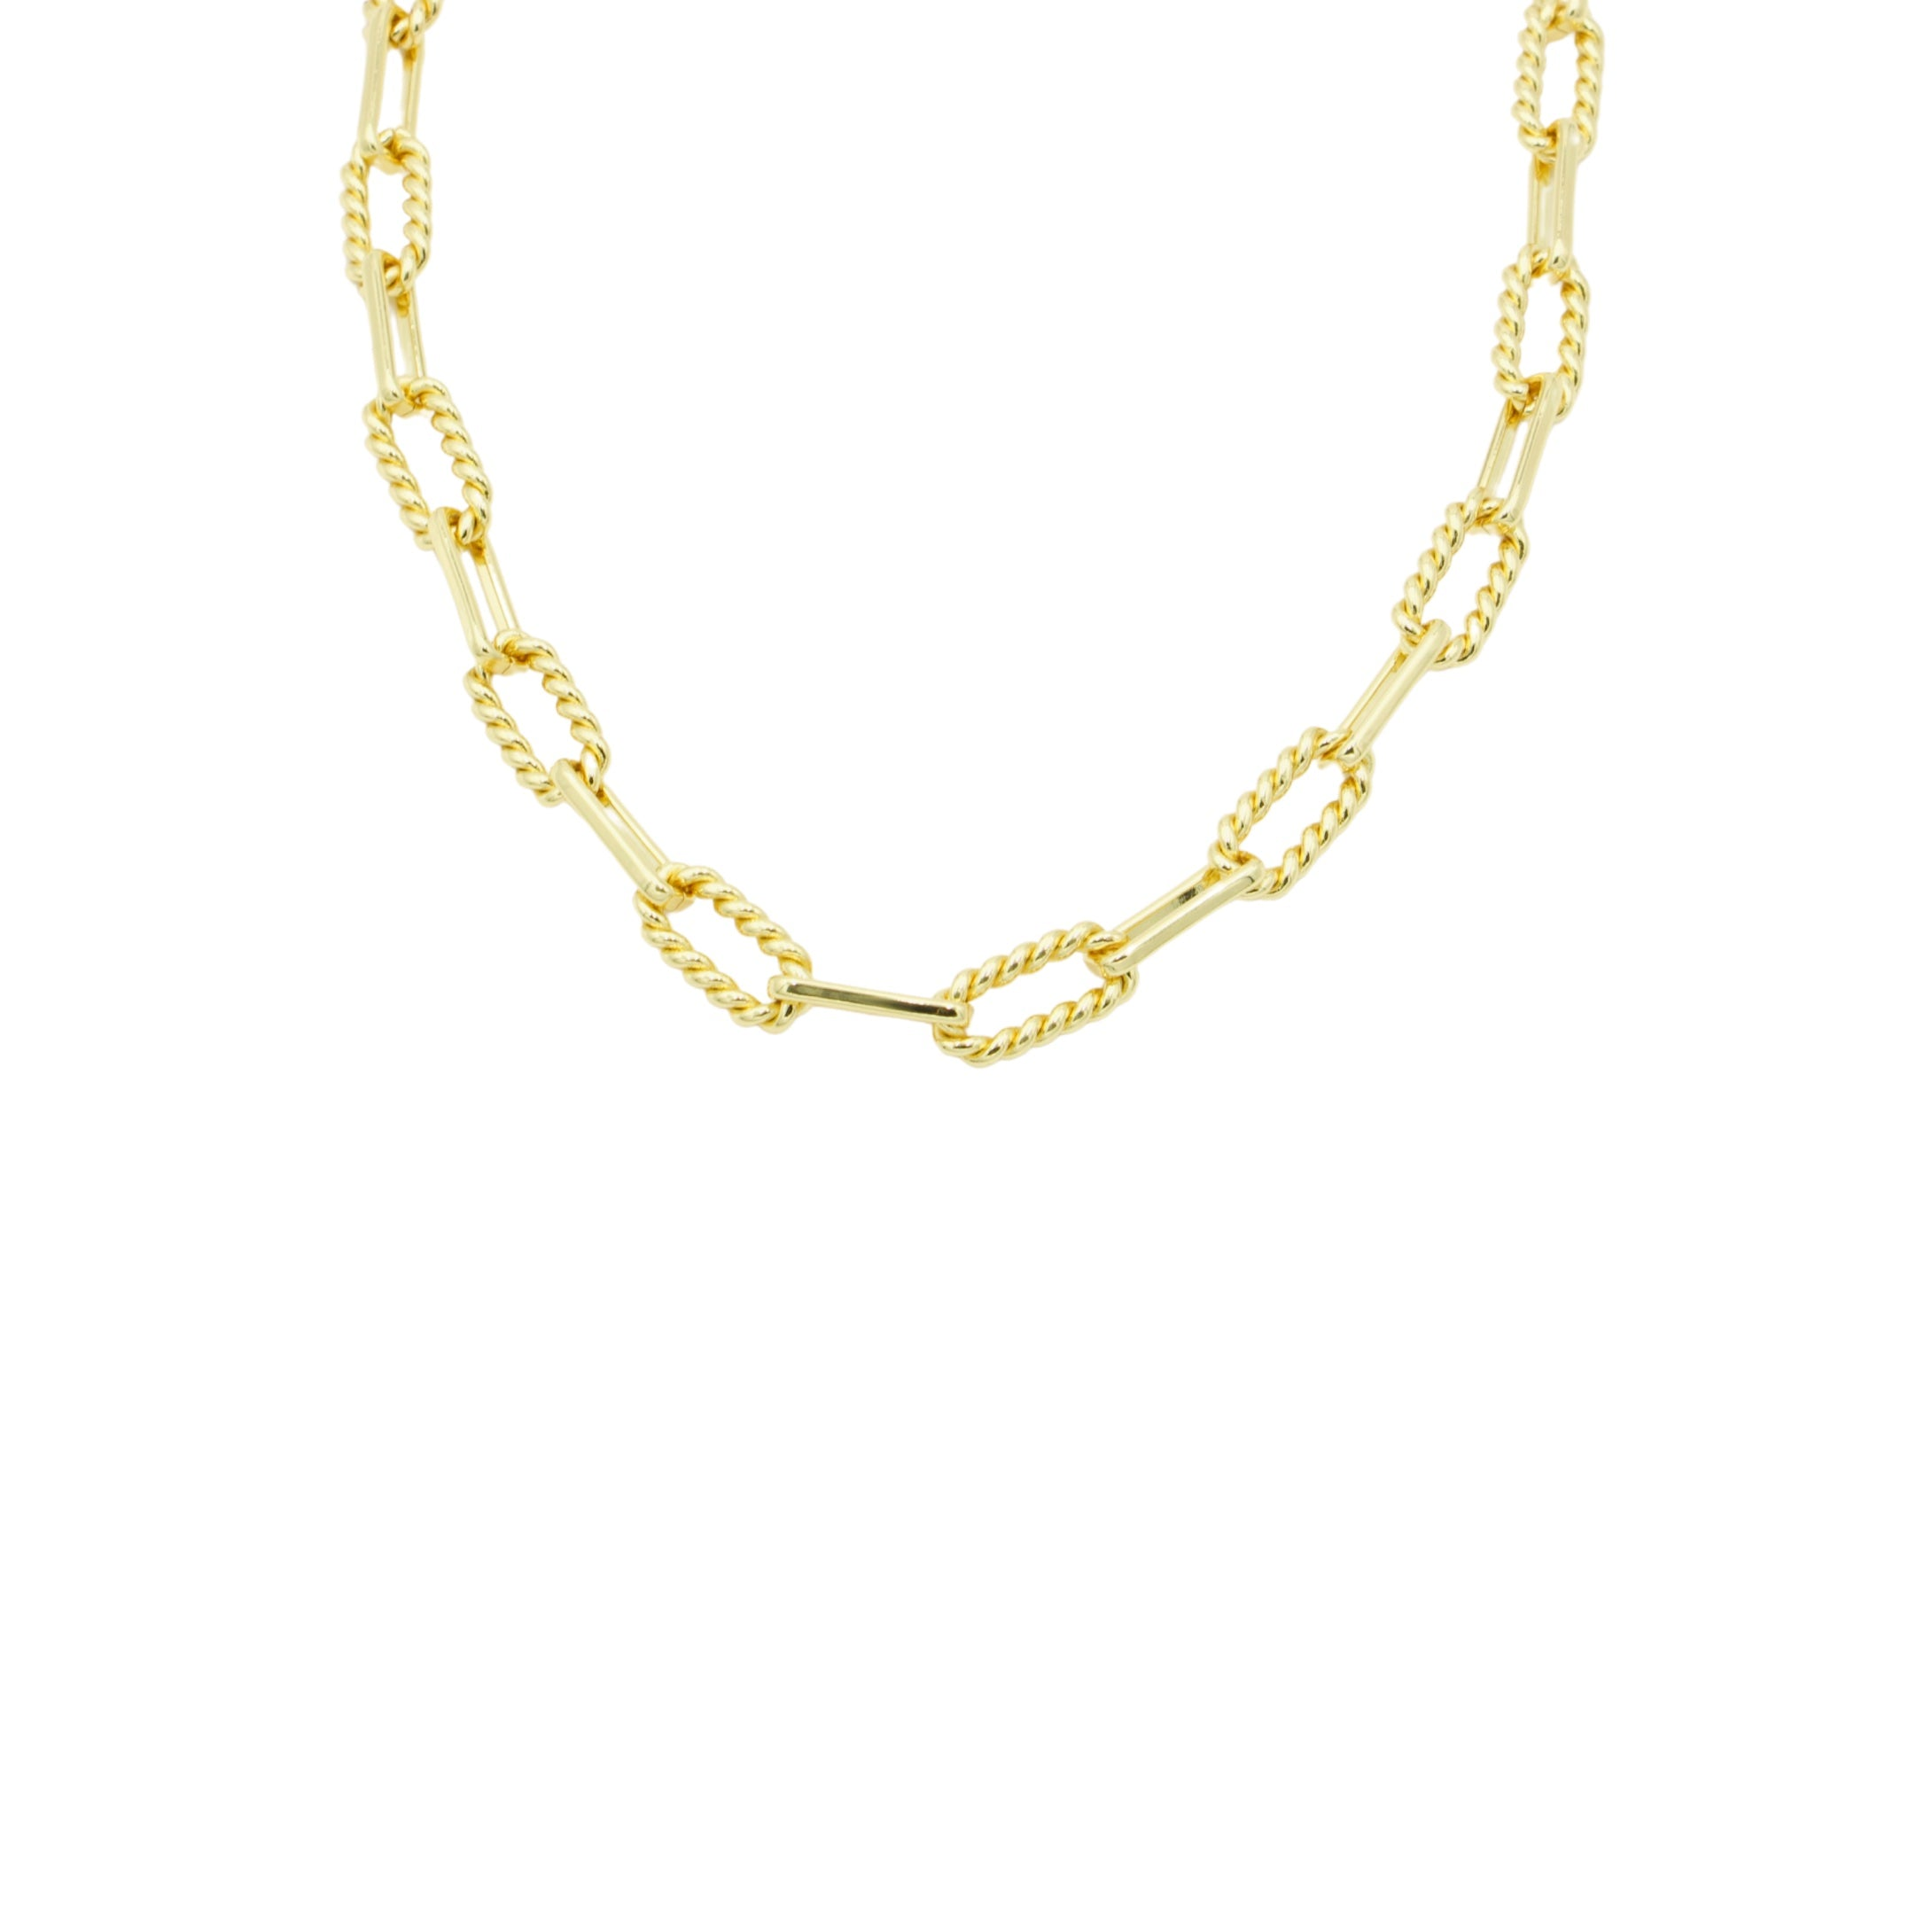 AW Boutique's Twisted Oval Link Chain is a beautiful, textured chain that is both bold and feminine. The twisted links bring a softer edge to this striking piece. Sitting at 19 inches long you can wear this gold treasure alone or layer with a finer chain to give it an edgier look. Whatever way you choose to wear this piece it will quickly become a staple.